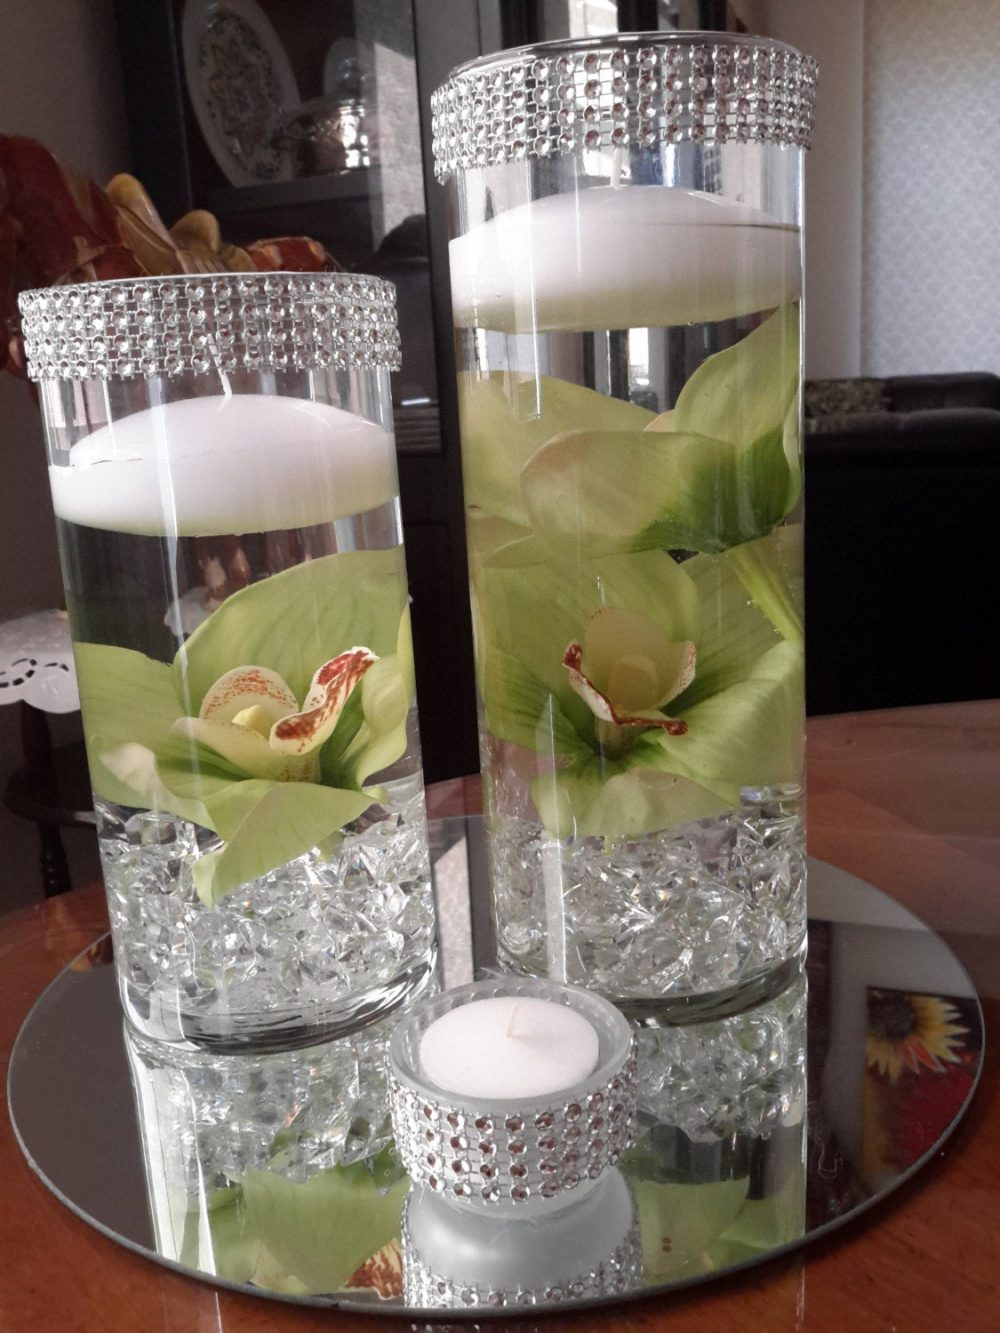 Floating Candle Set-Orchid Centerpiece-Bling Cylinder Vase - Party-Anniversary-Birthday-Engagement-Bridal Shower